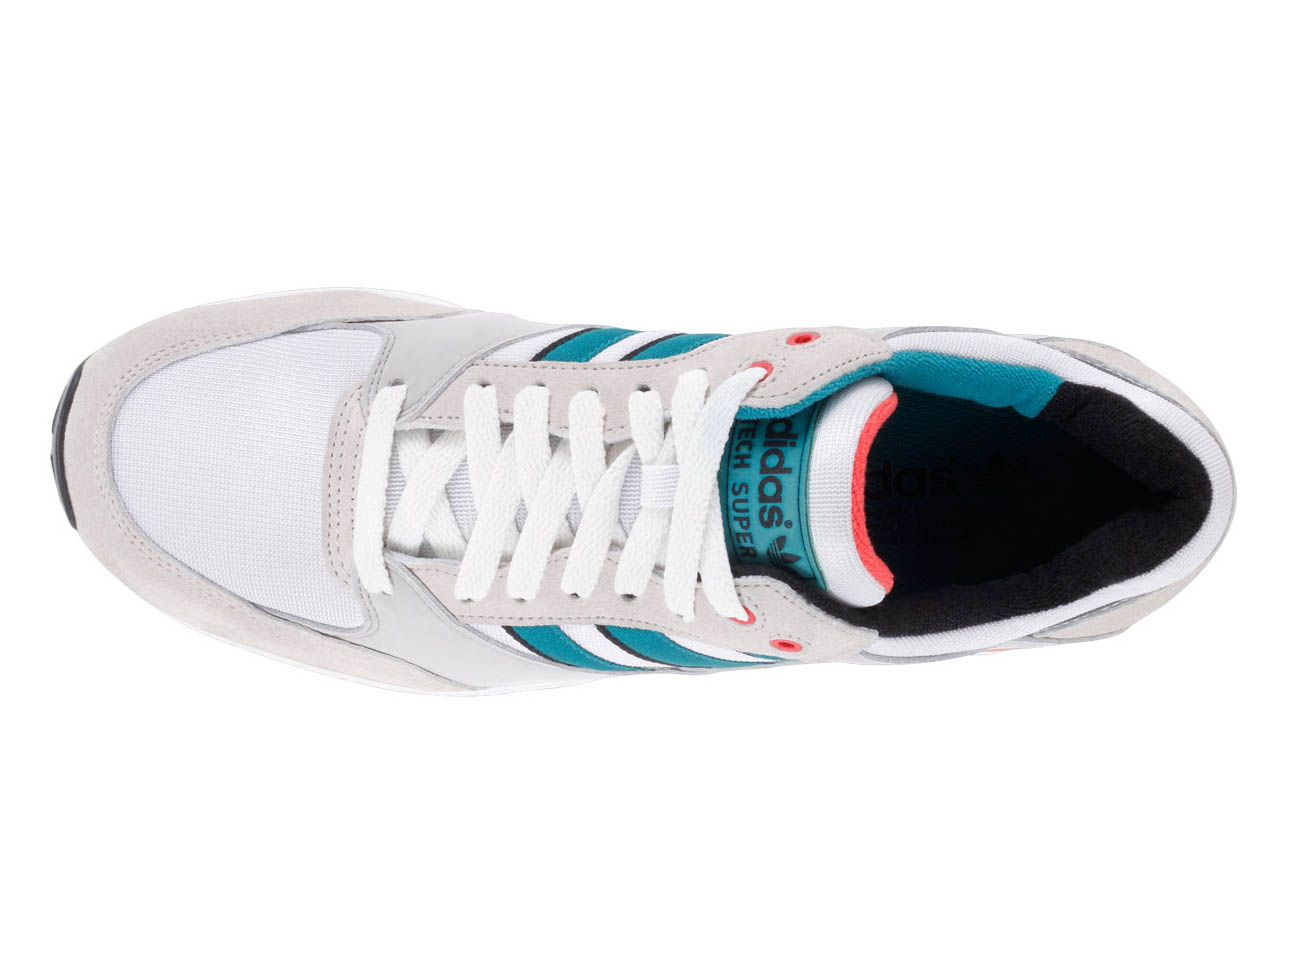 adidas-tech-super-running-white-teal-red-3